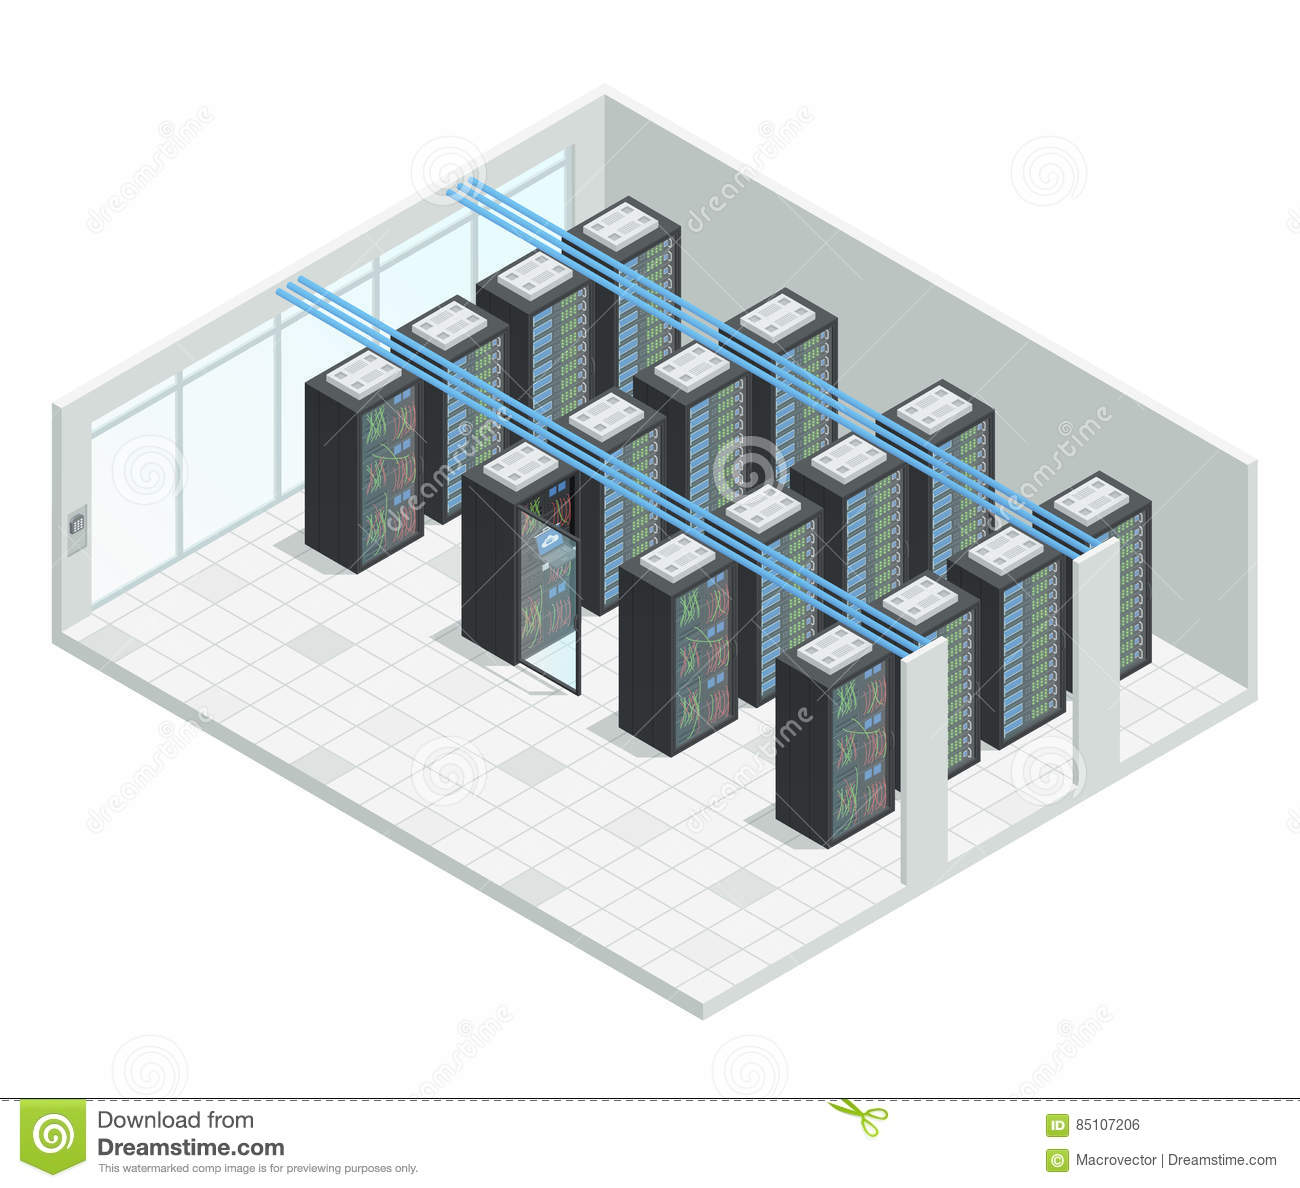 Server Room Isometric Interior Stock Vector Illustration Of Graphic Interface 85107206